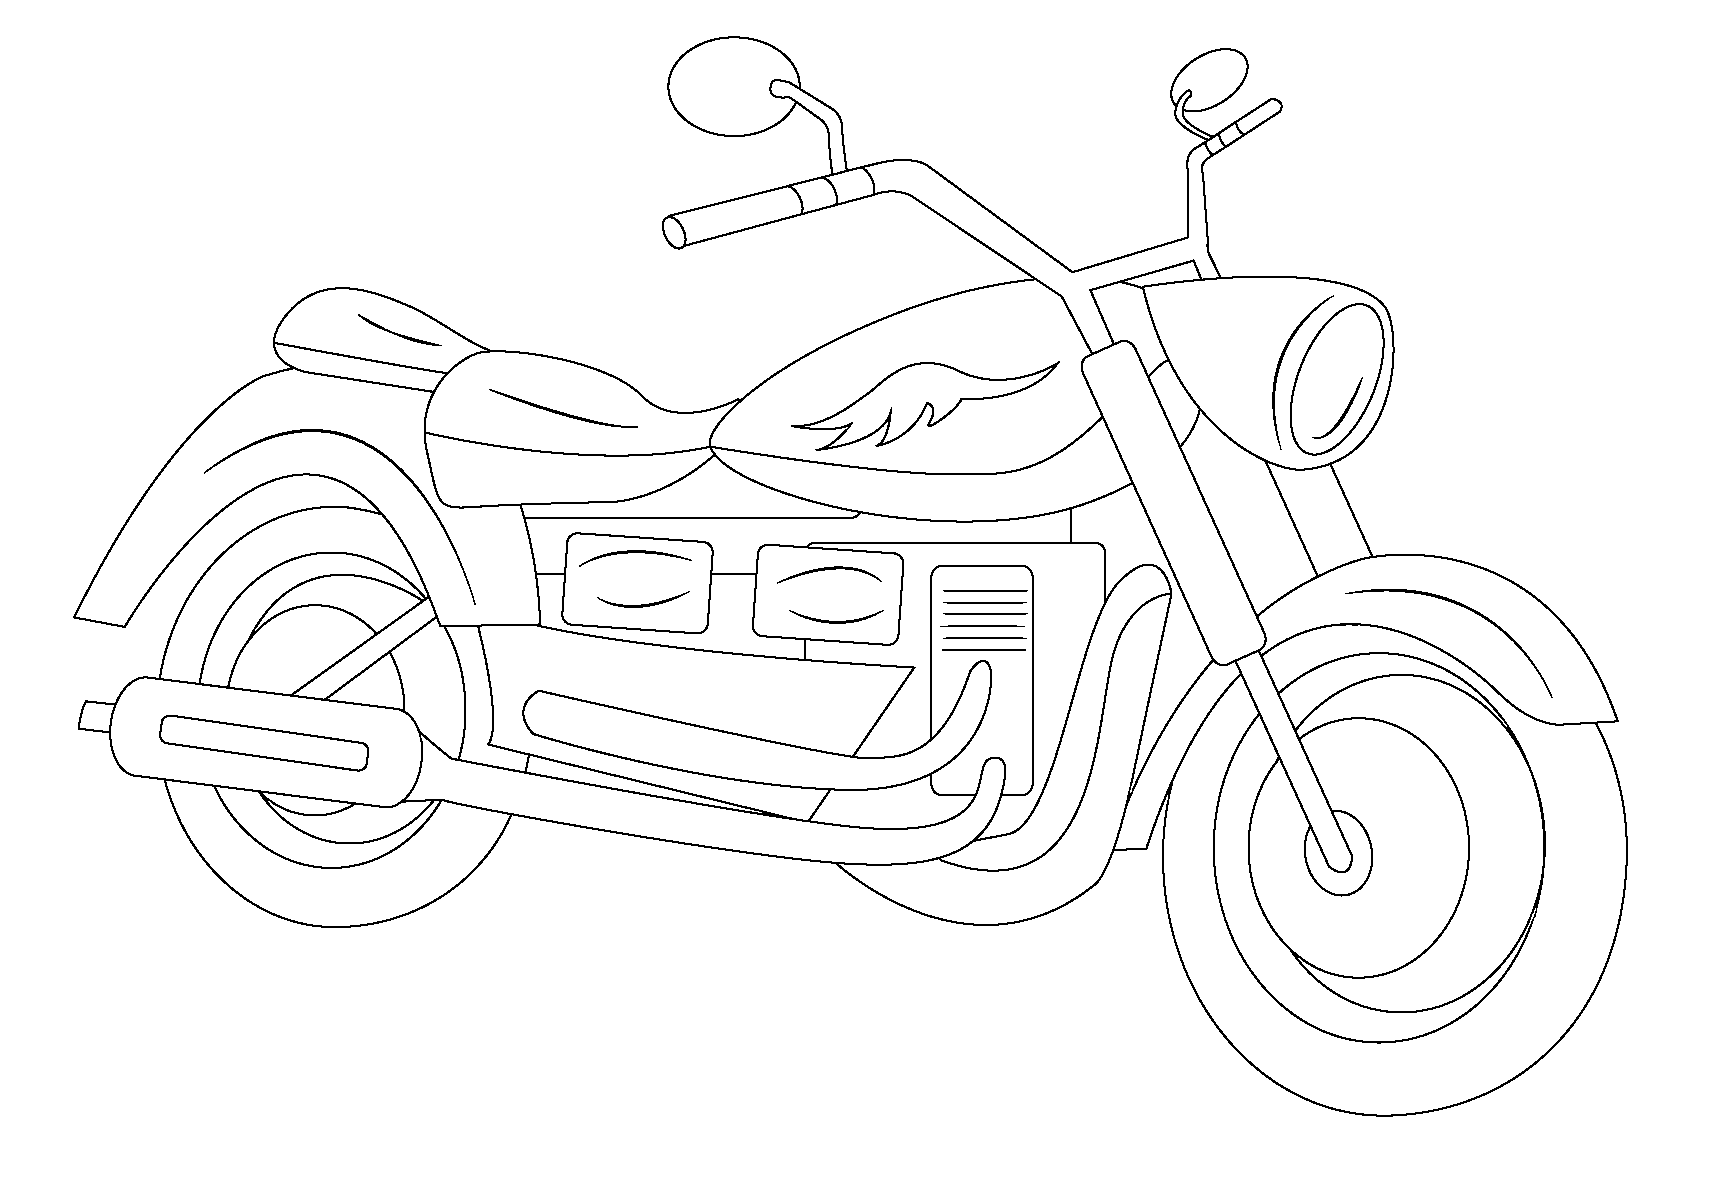 It's just an image of Slobbery motocycle coloring page